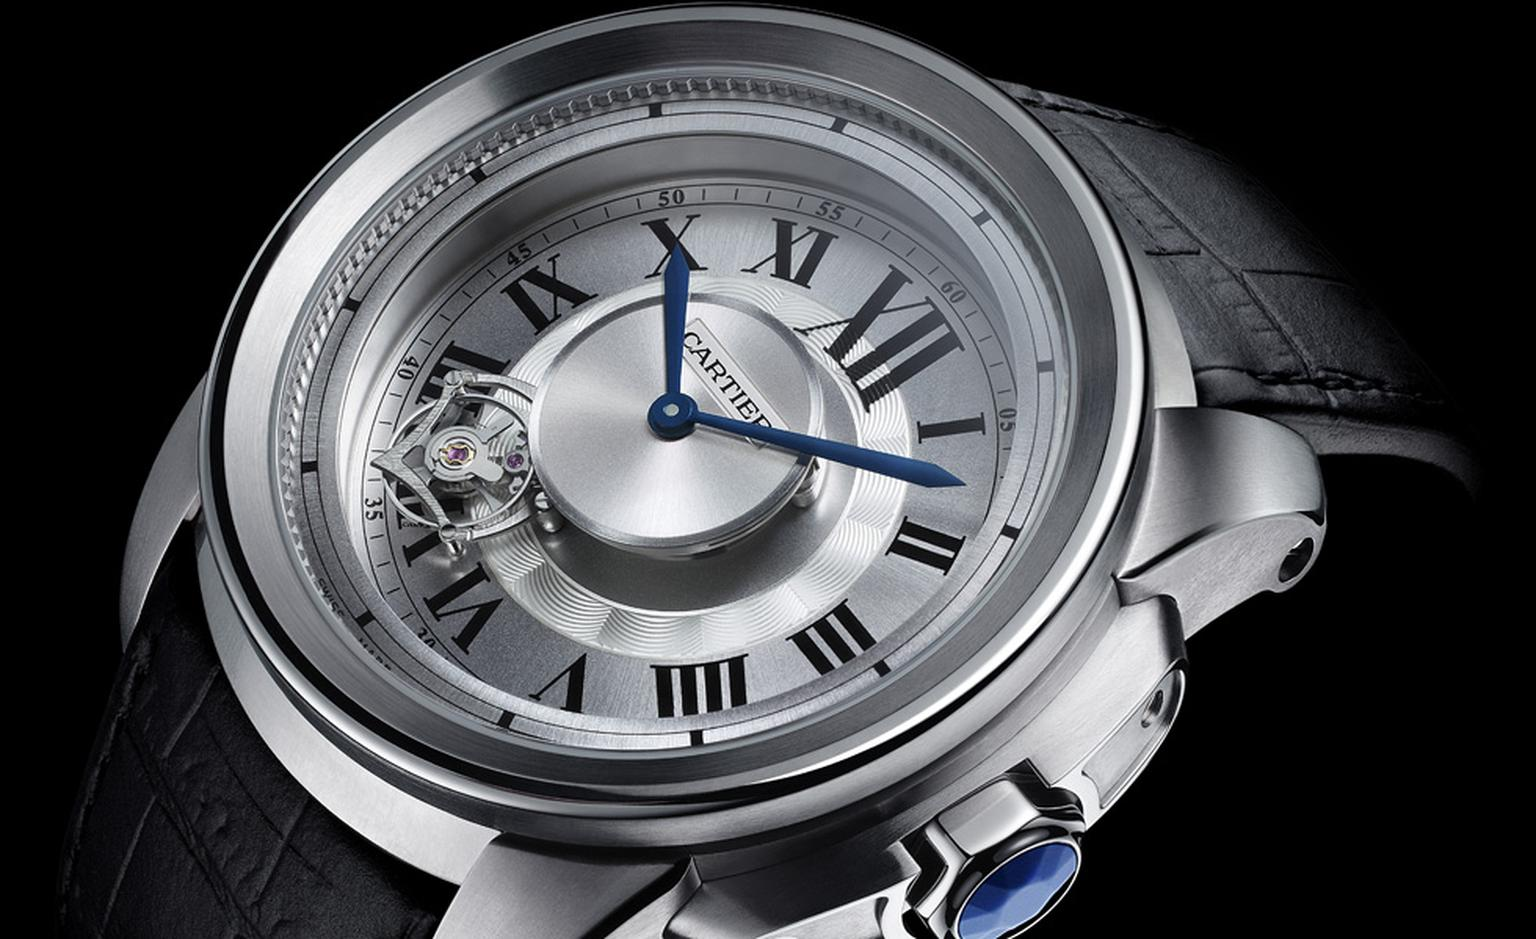 Cartier's Calibre Astrotourbillon that for 2010 comes in the sportier Calibre case shape made of light weight titanium photo Laziz Hamani Cartier 2010